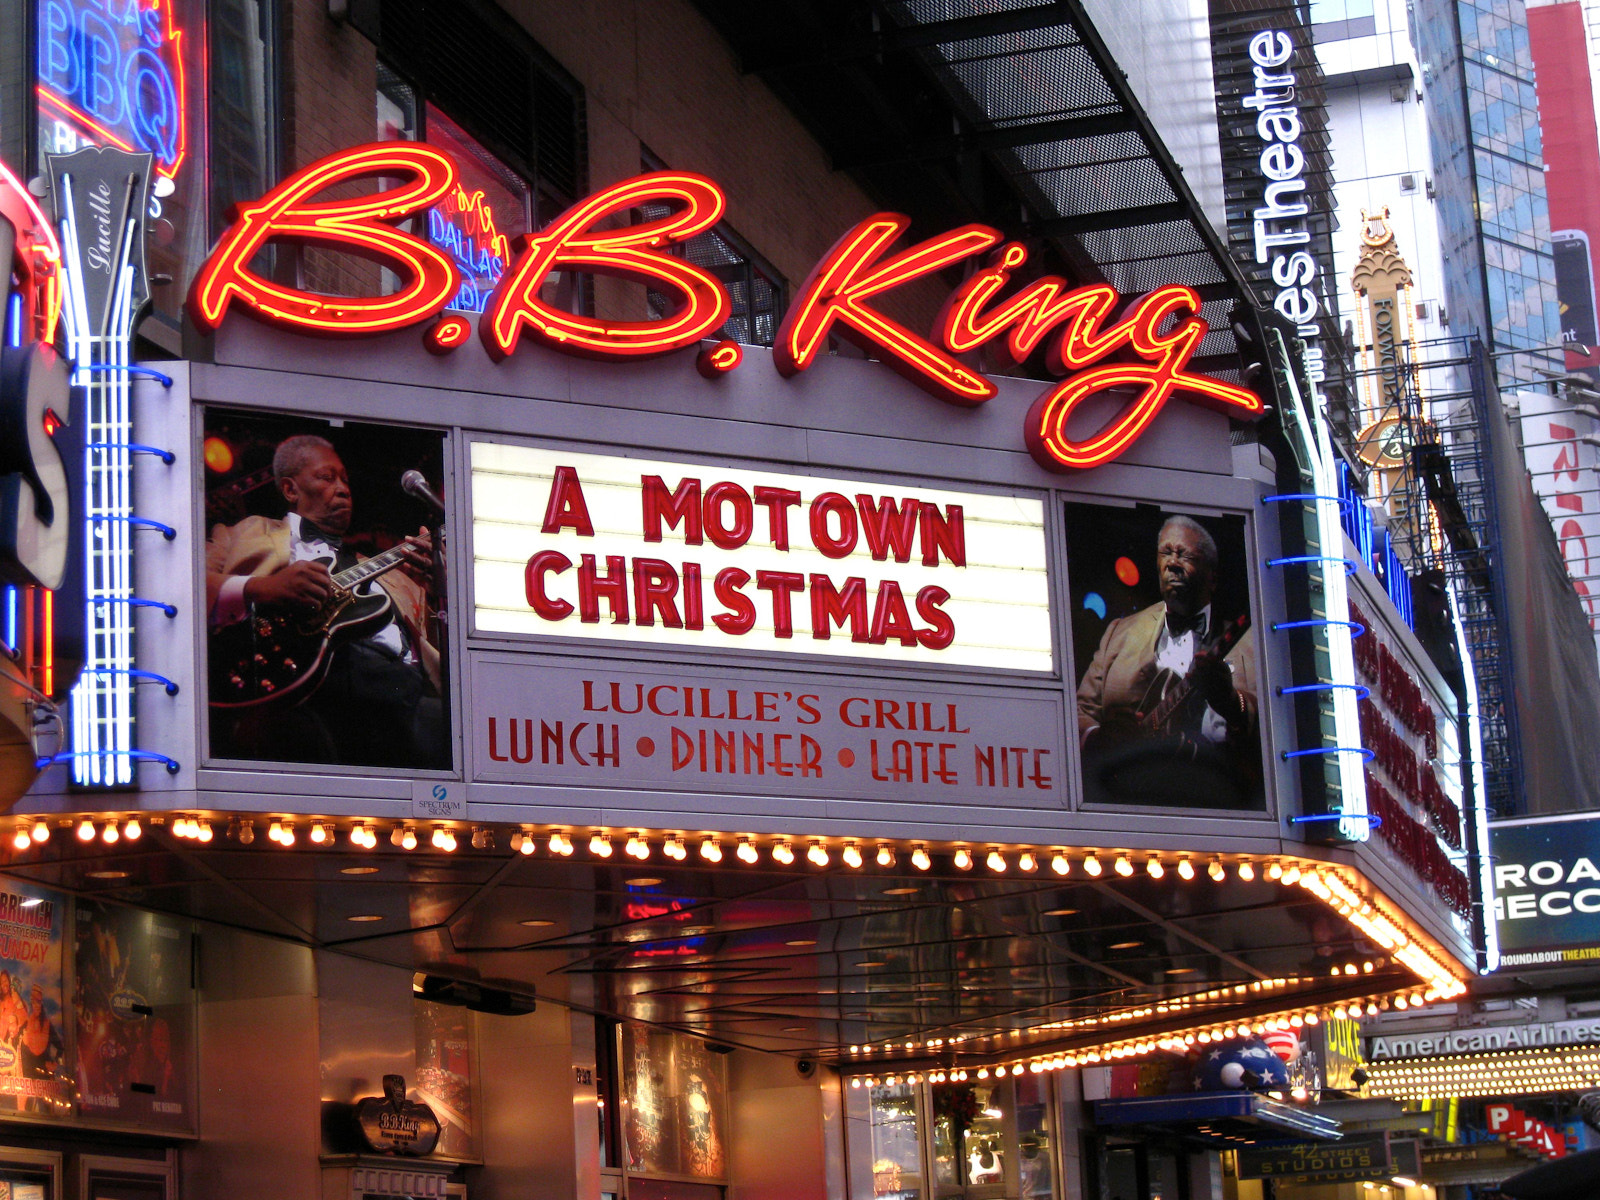 Photograph BB King by PerfectStills Martin on 500px